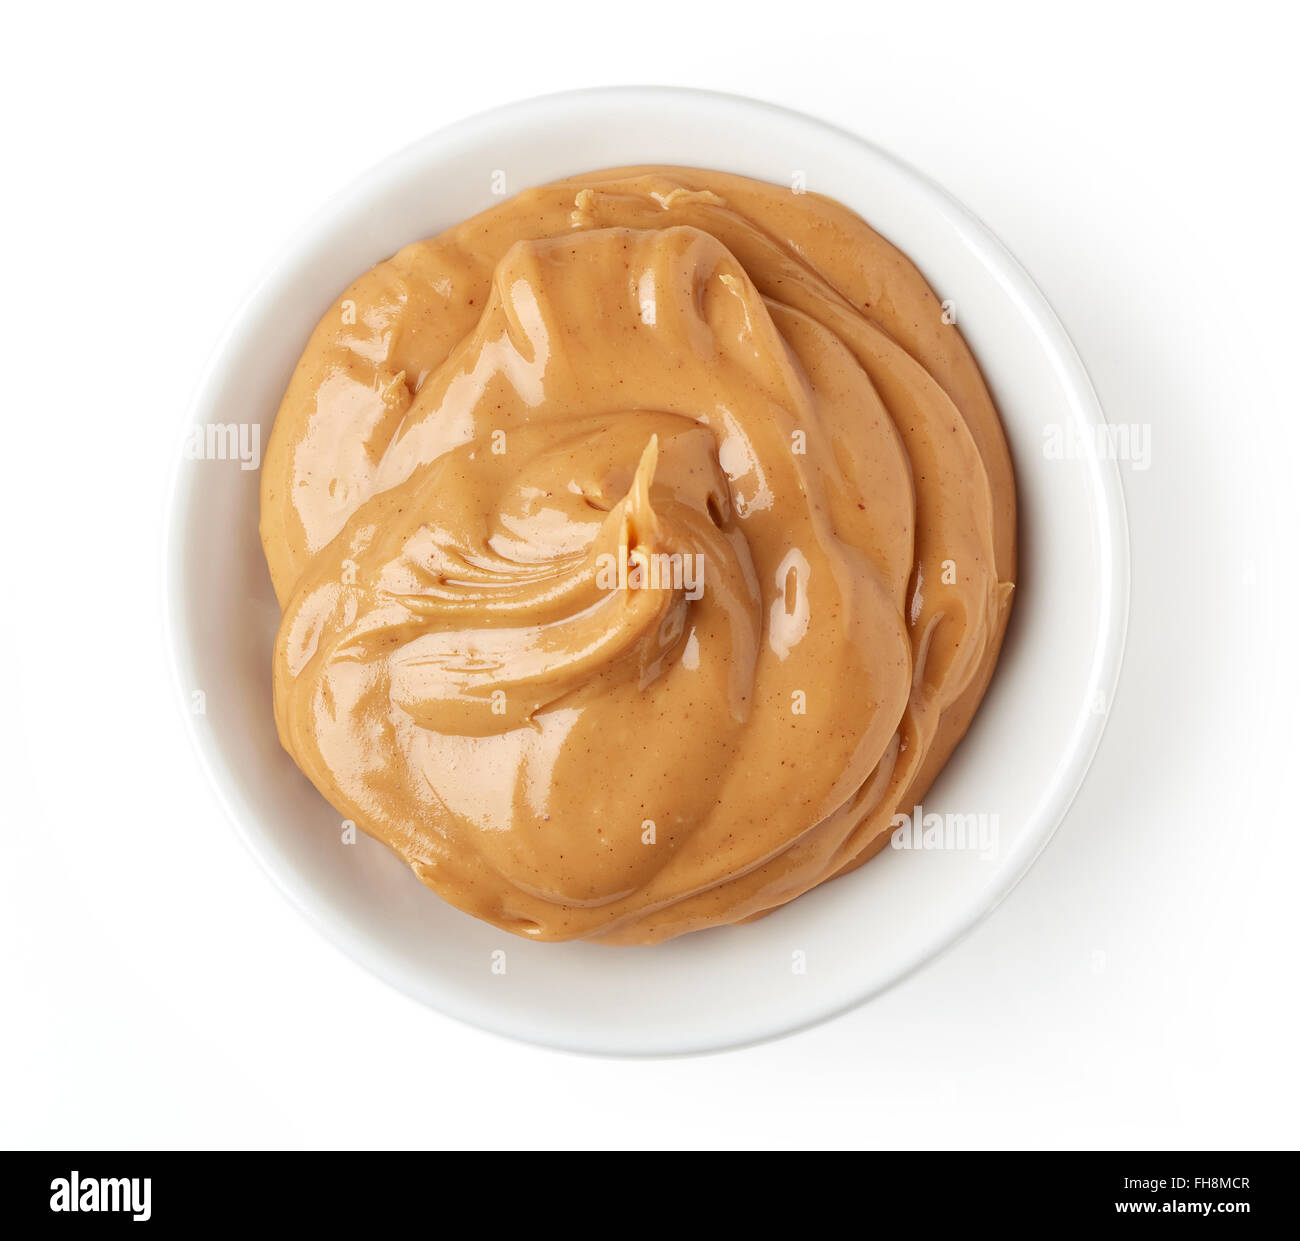 Creamy peanut butter in round dish isolated on white background, top view - Stock Image